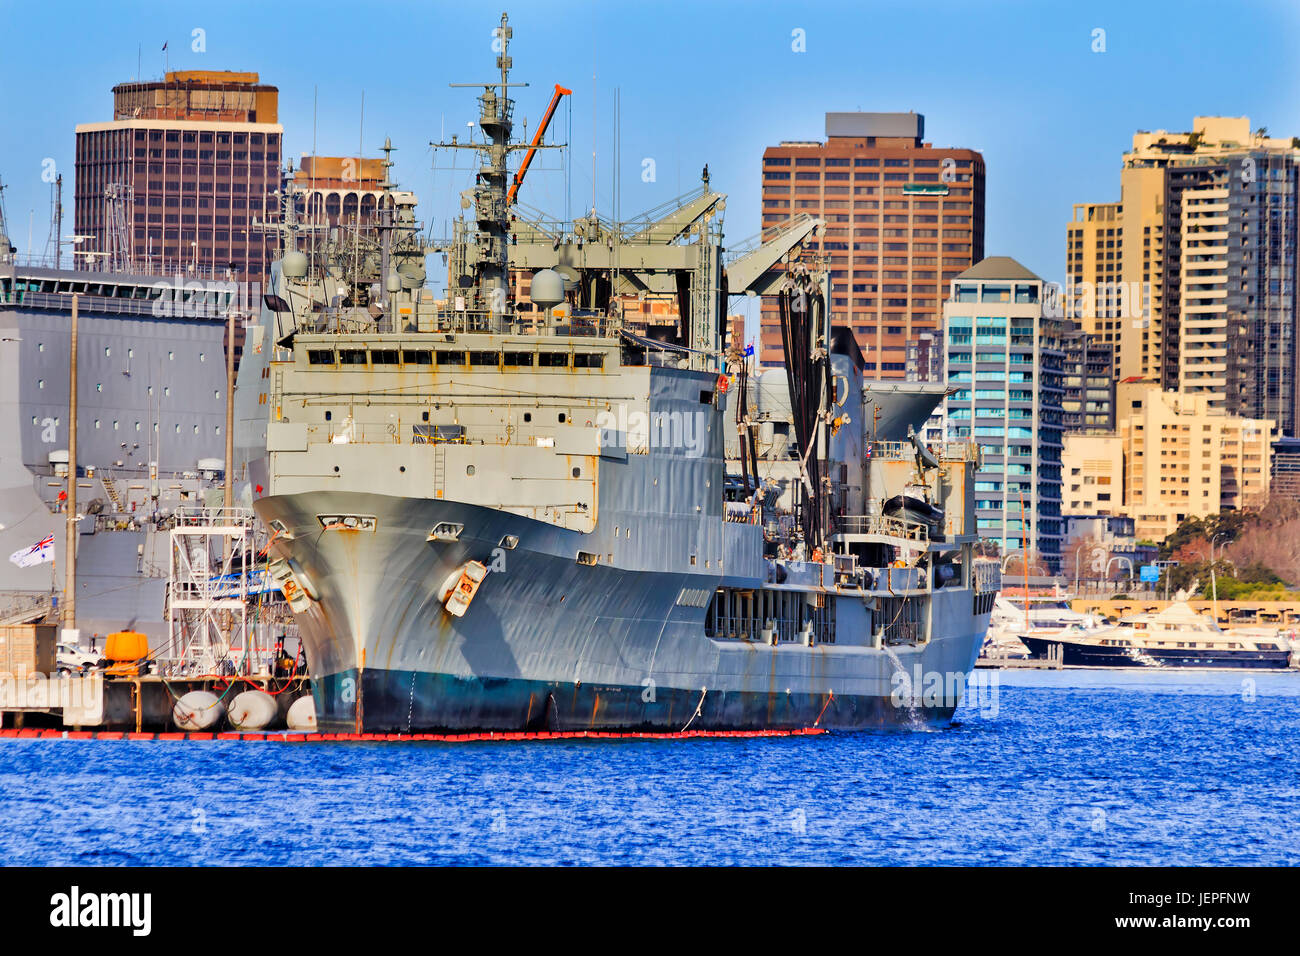 Front of Her Majesty Australian ship at military navy base in Sydney cove on a sunny day against residential high - Stock Image